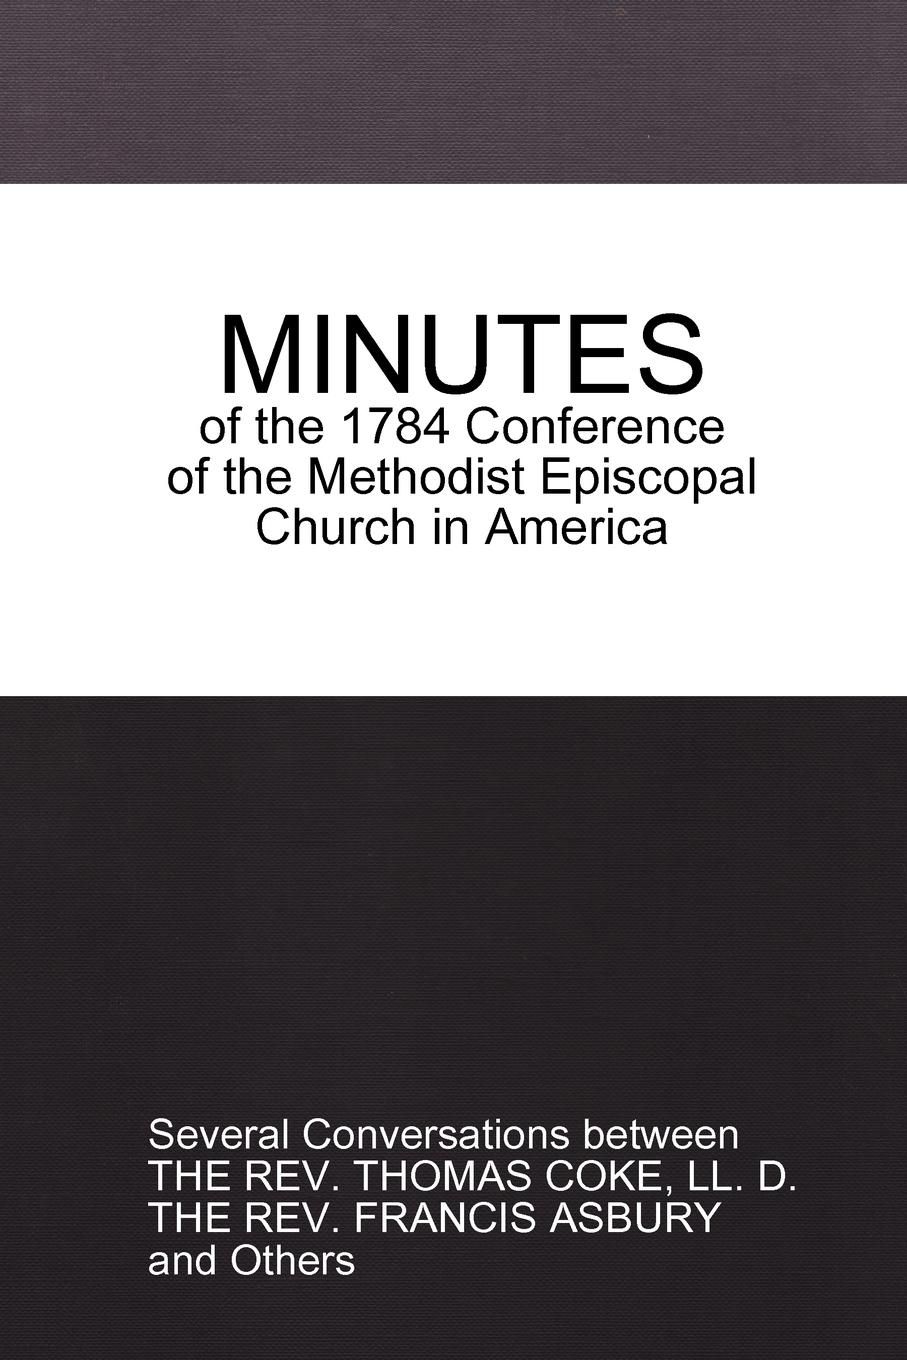 Thomas Coke MINUTES of the 1784 Conference. of the Methodist Episcopal Church in America цены